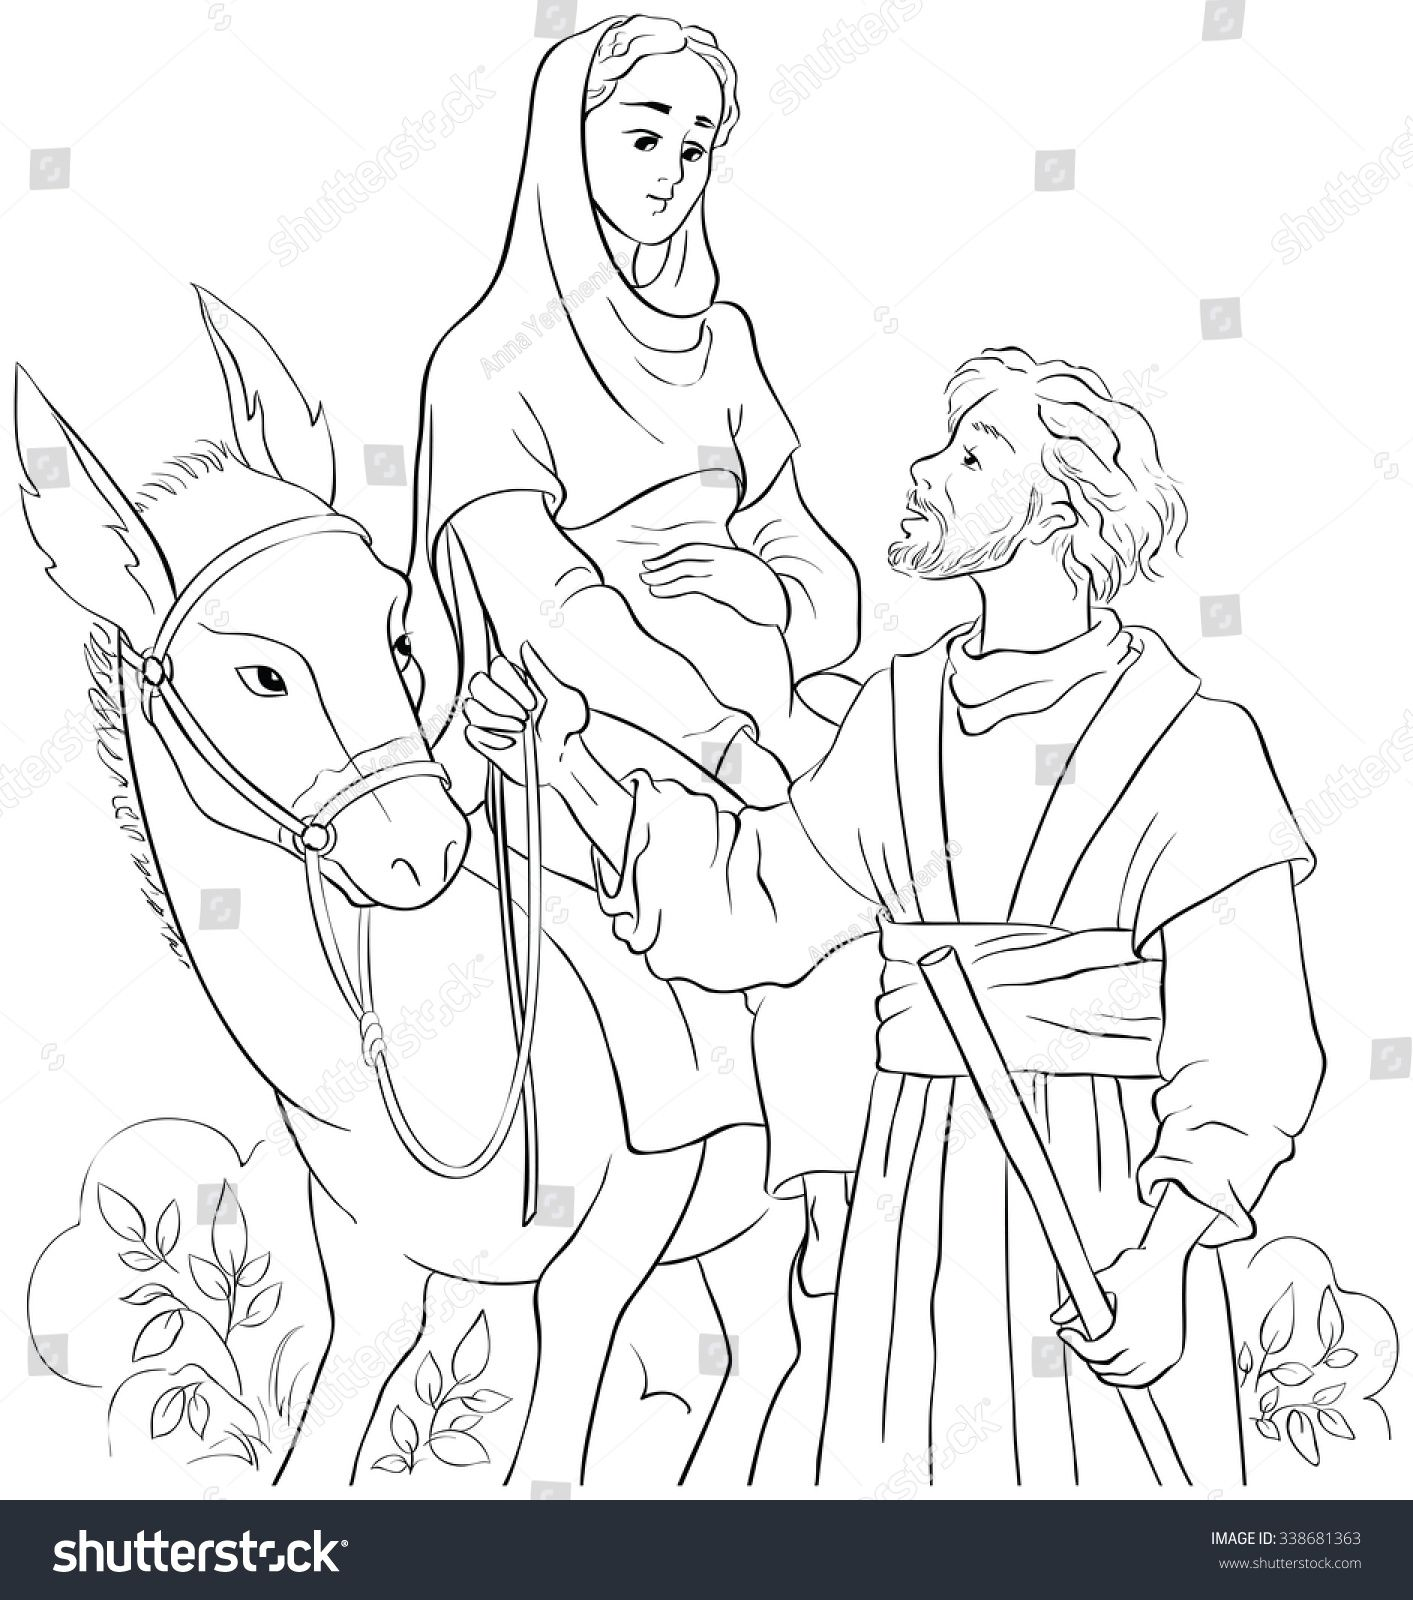 Mary And Joseph Travelling By Donkey To Bethlehem Coloring Page Also Available Colored Version The Nativity Story Coloring Pages Bible Coloring Pages